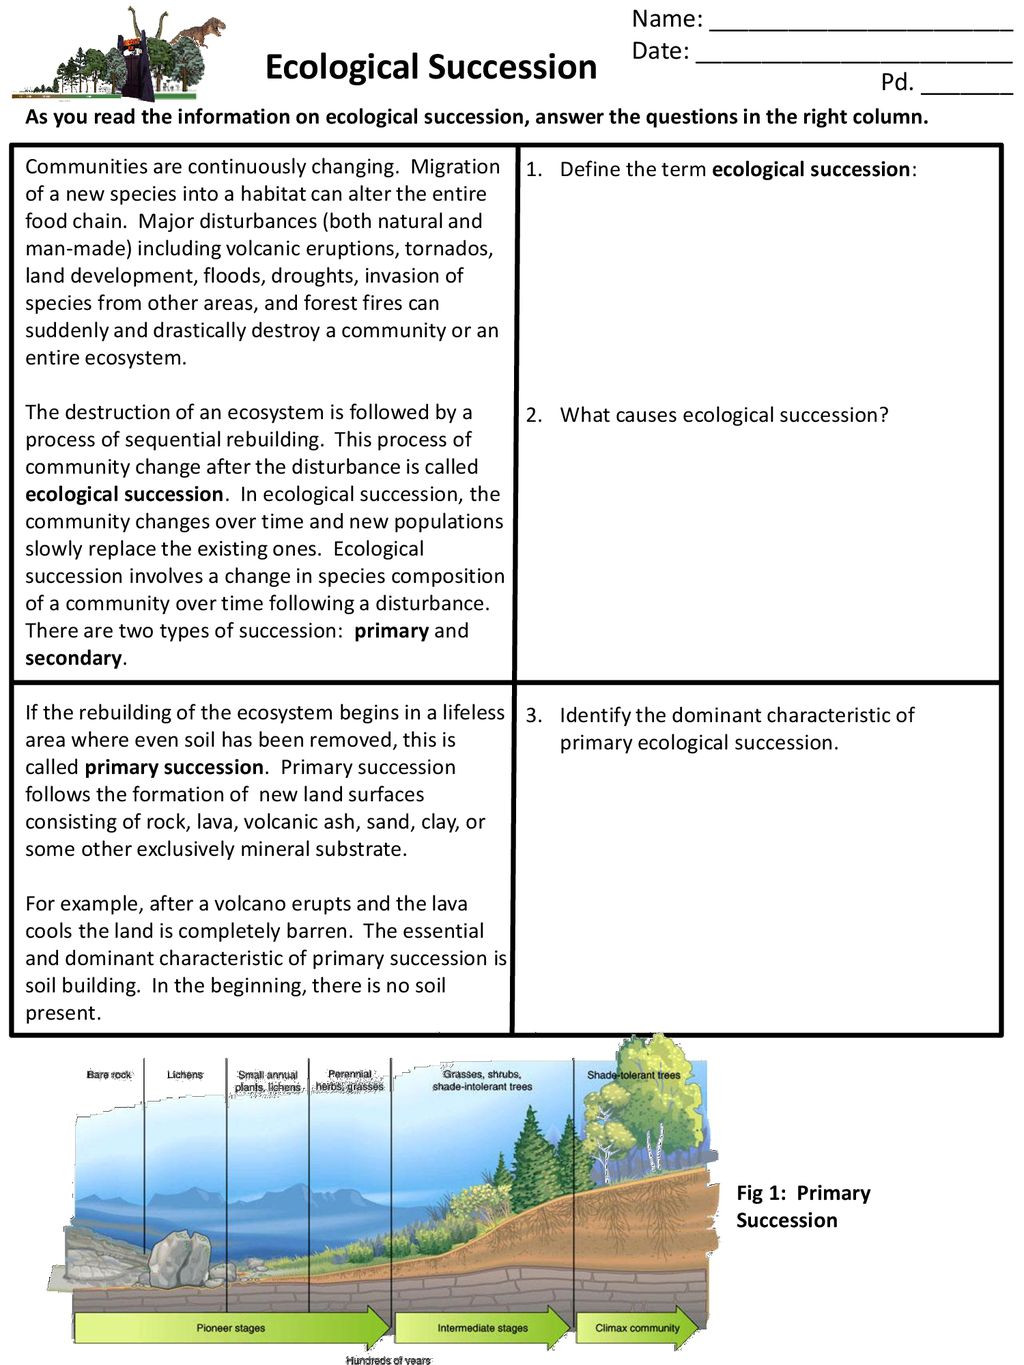 Ecological Succession Worksheet Answers Ecological Succession Ppt